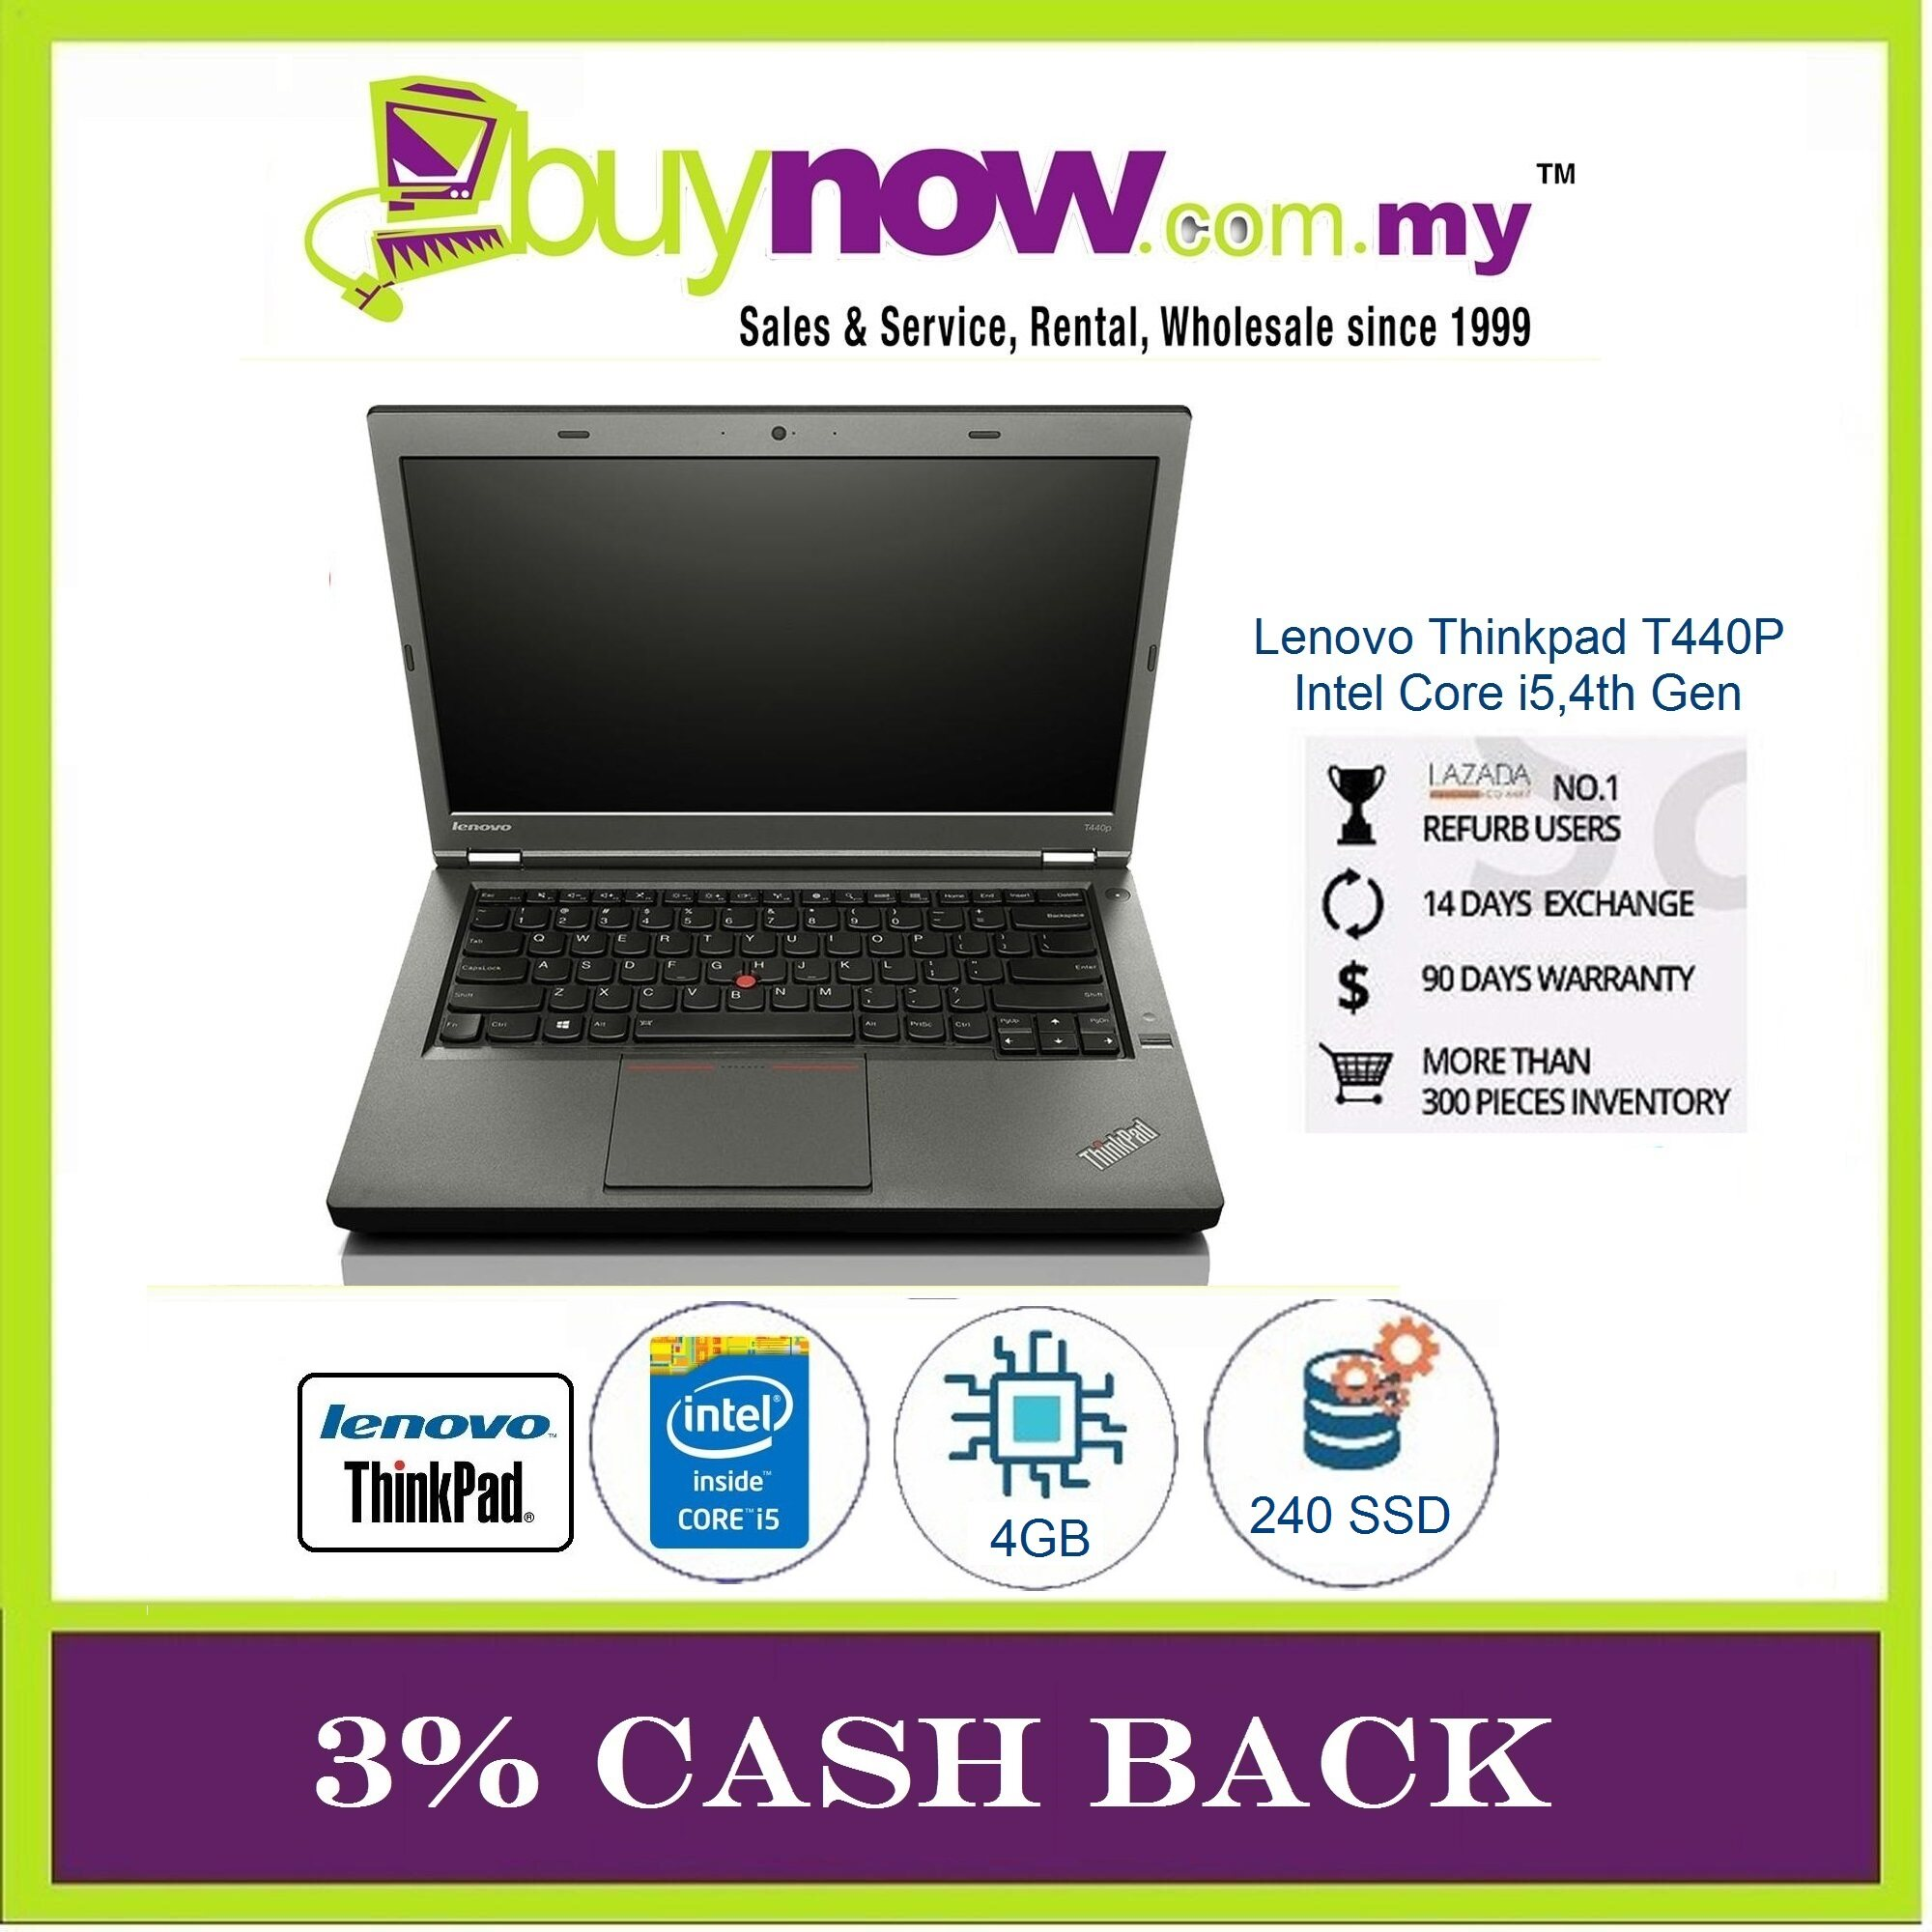 Lenovo Thinkpad T440P T440 Laptop Notebook Intel Core i5-4200M 4th Gen 2.5GHz, 4GB RAM / 240GB SSD / Window 8 Pro 64-Bit / Free Notebook Bag / 30 Days Warranty (Factory Refurbished) Malaysia